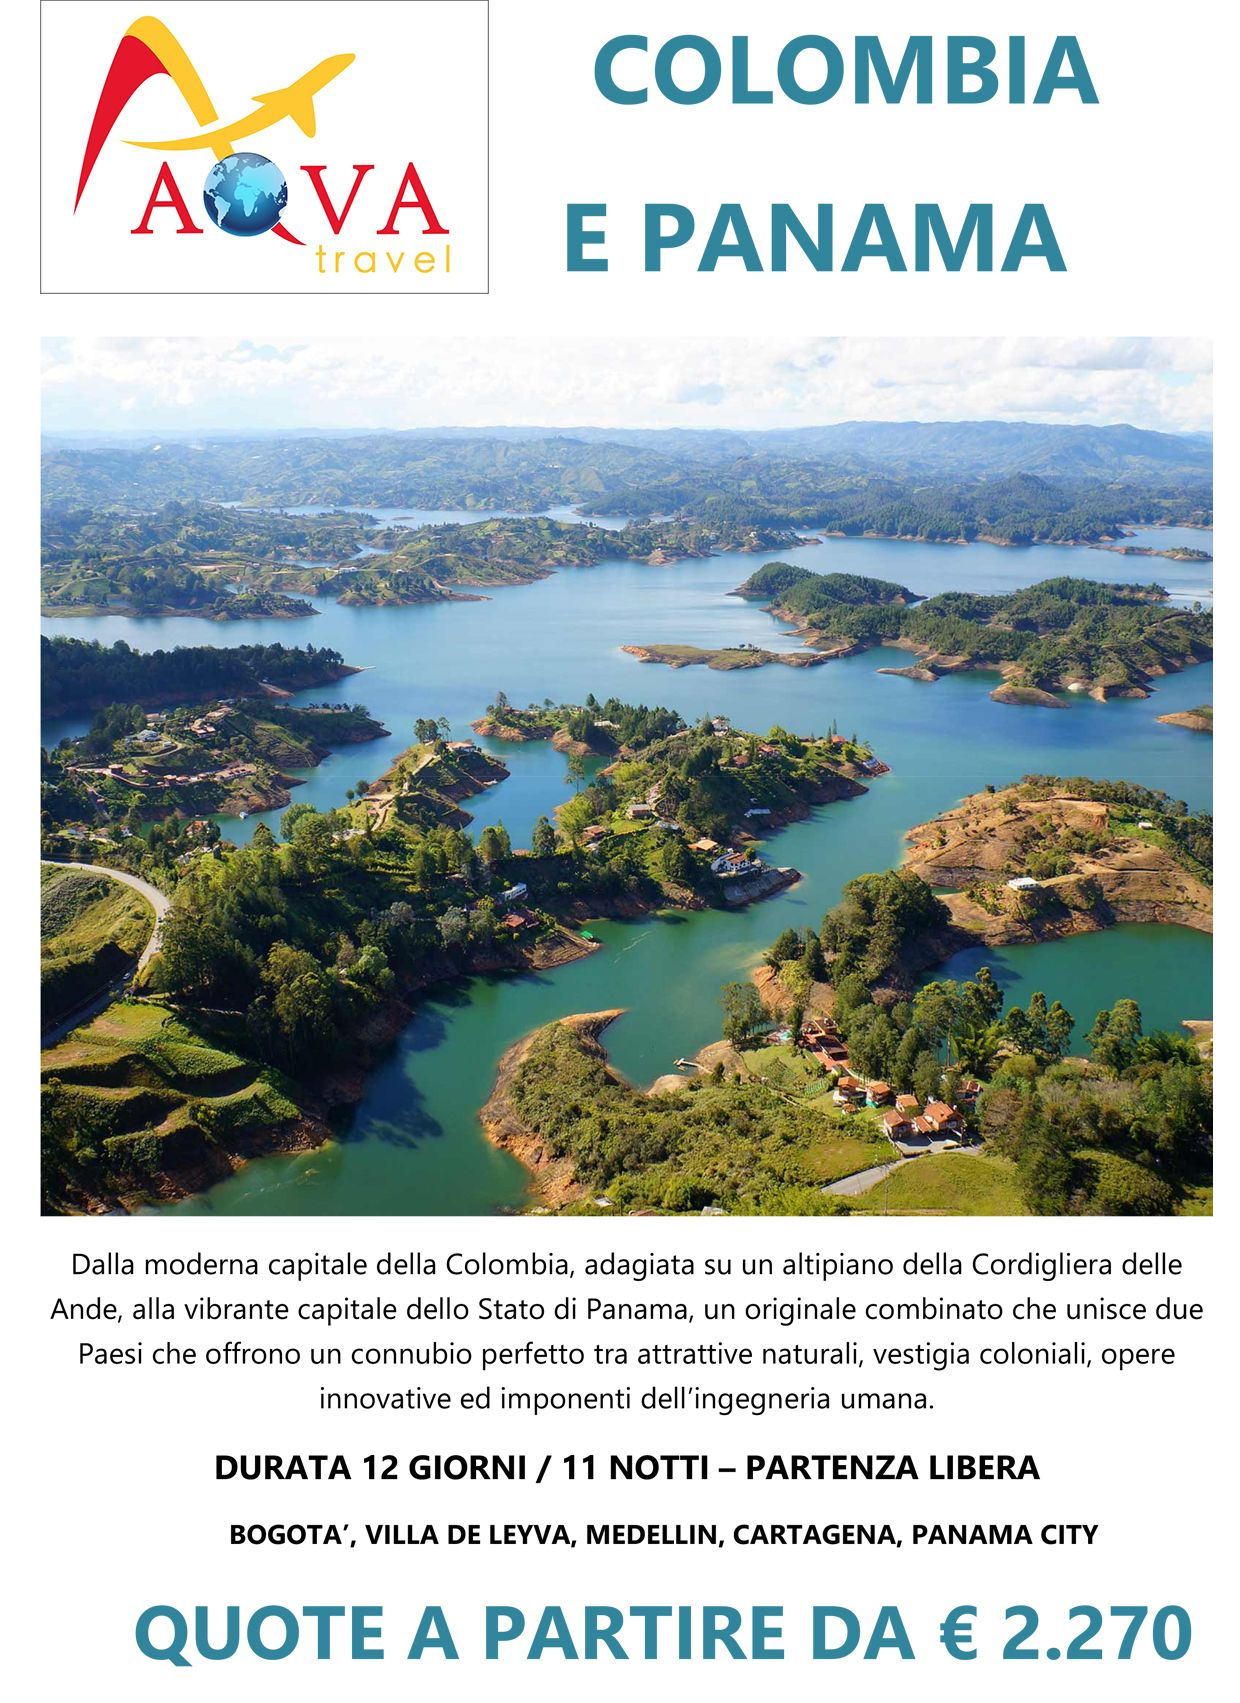 Tour Colombia e Panama